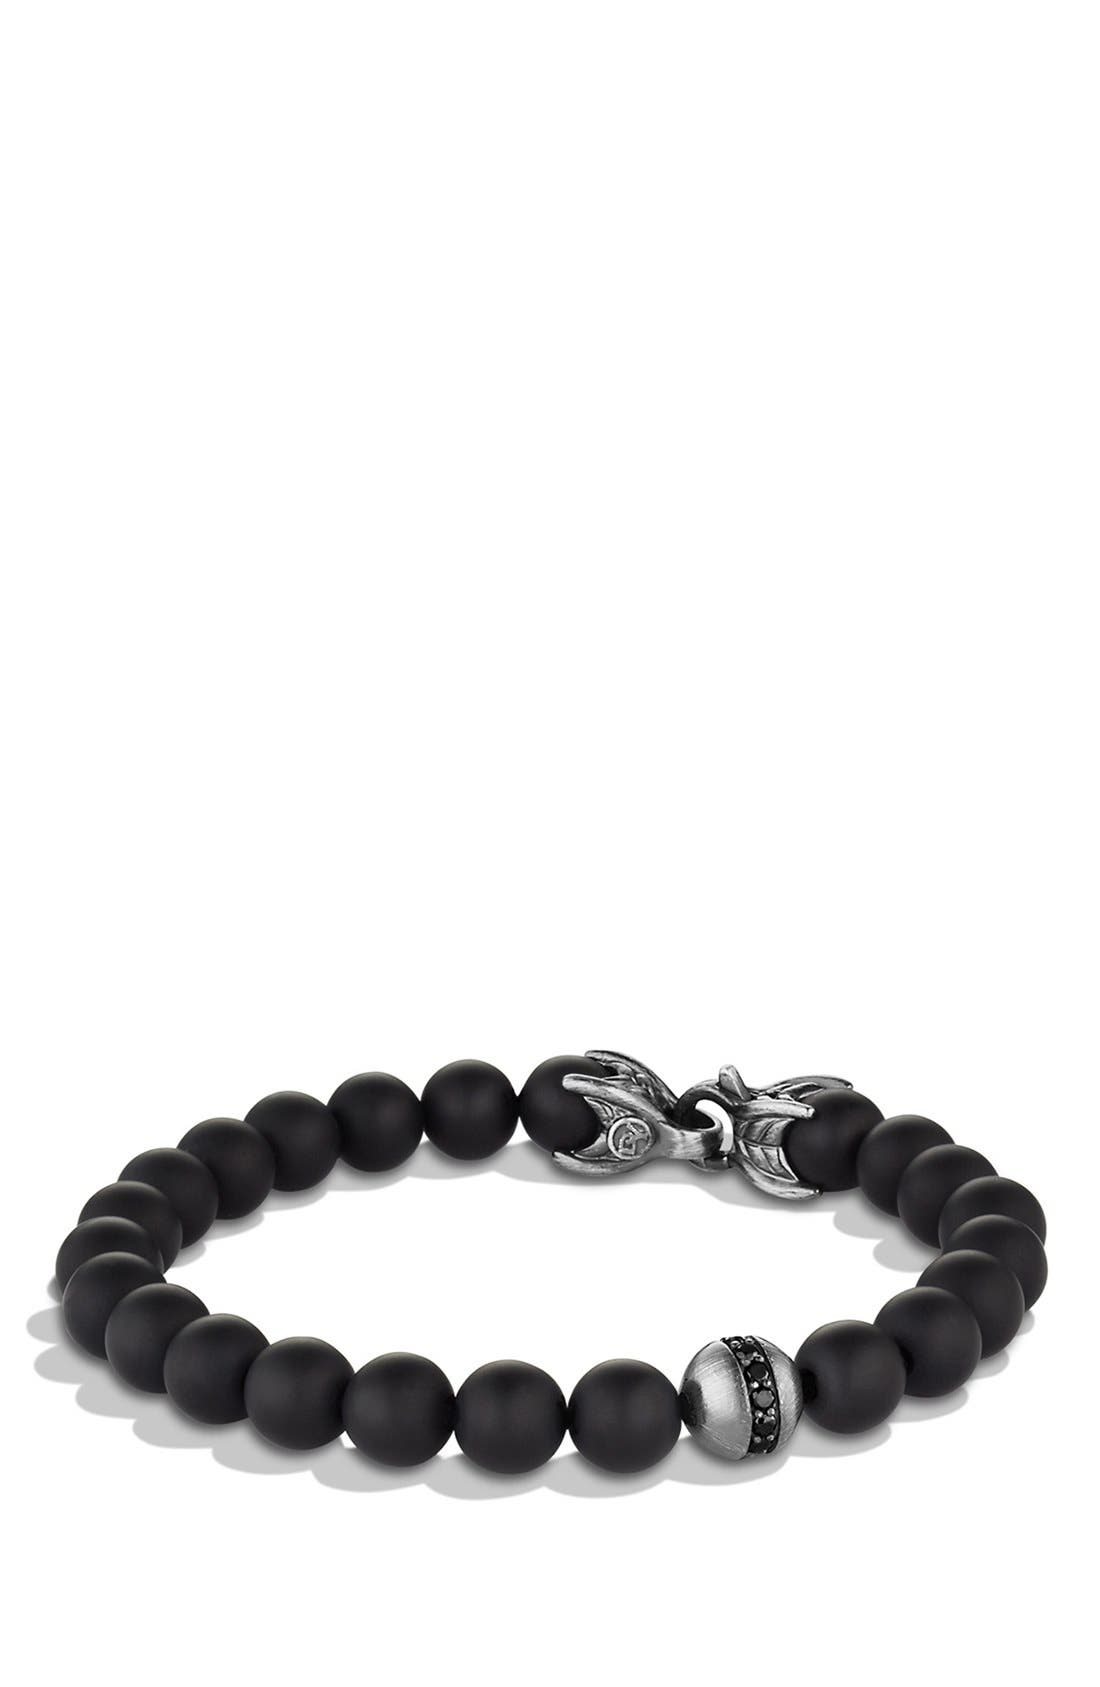 Main Image - David Yurman 'Spiritual Beads' Bracelet with Black Onyx and Black Diamonds